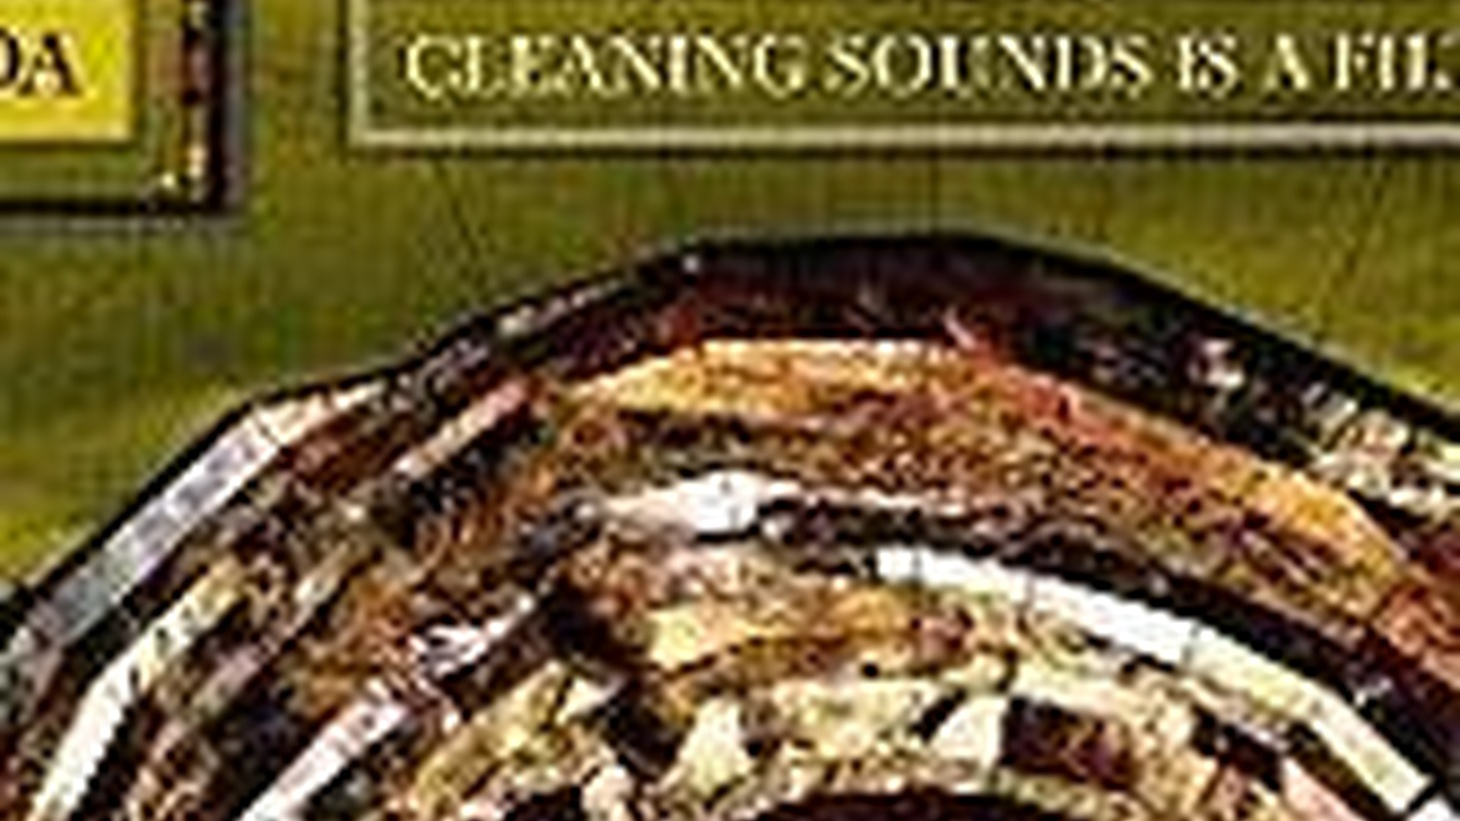 John Tejada celebrates 10 years of Palette Recordings with his latest release Cleaning Sounds Is a Filthy Business.  He drops by Nocturna for conversation and a guest DJ session in the 11 o'clock hour.